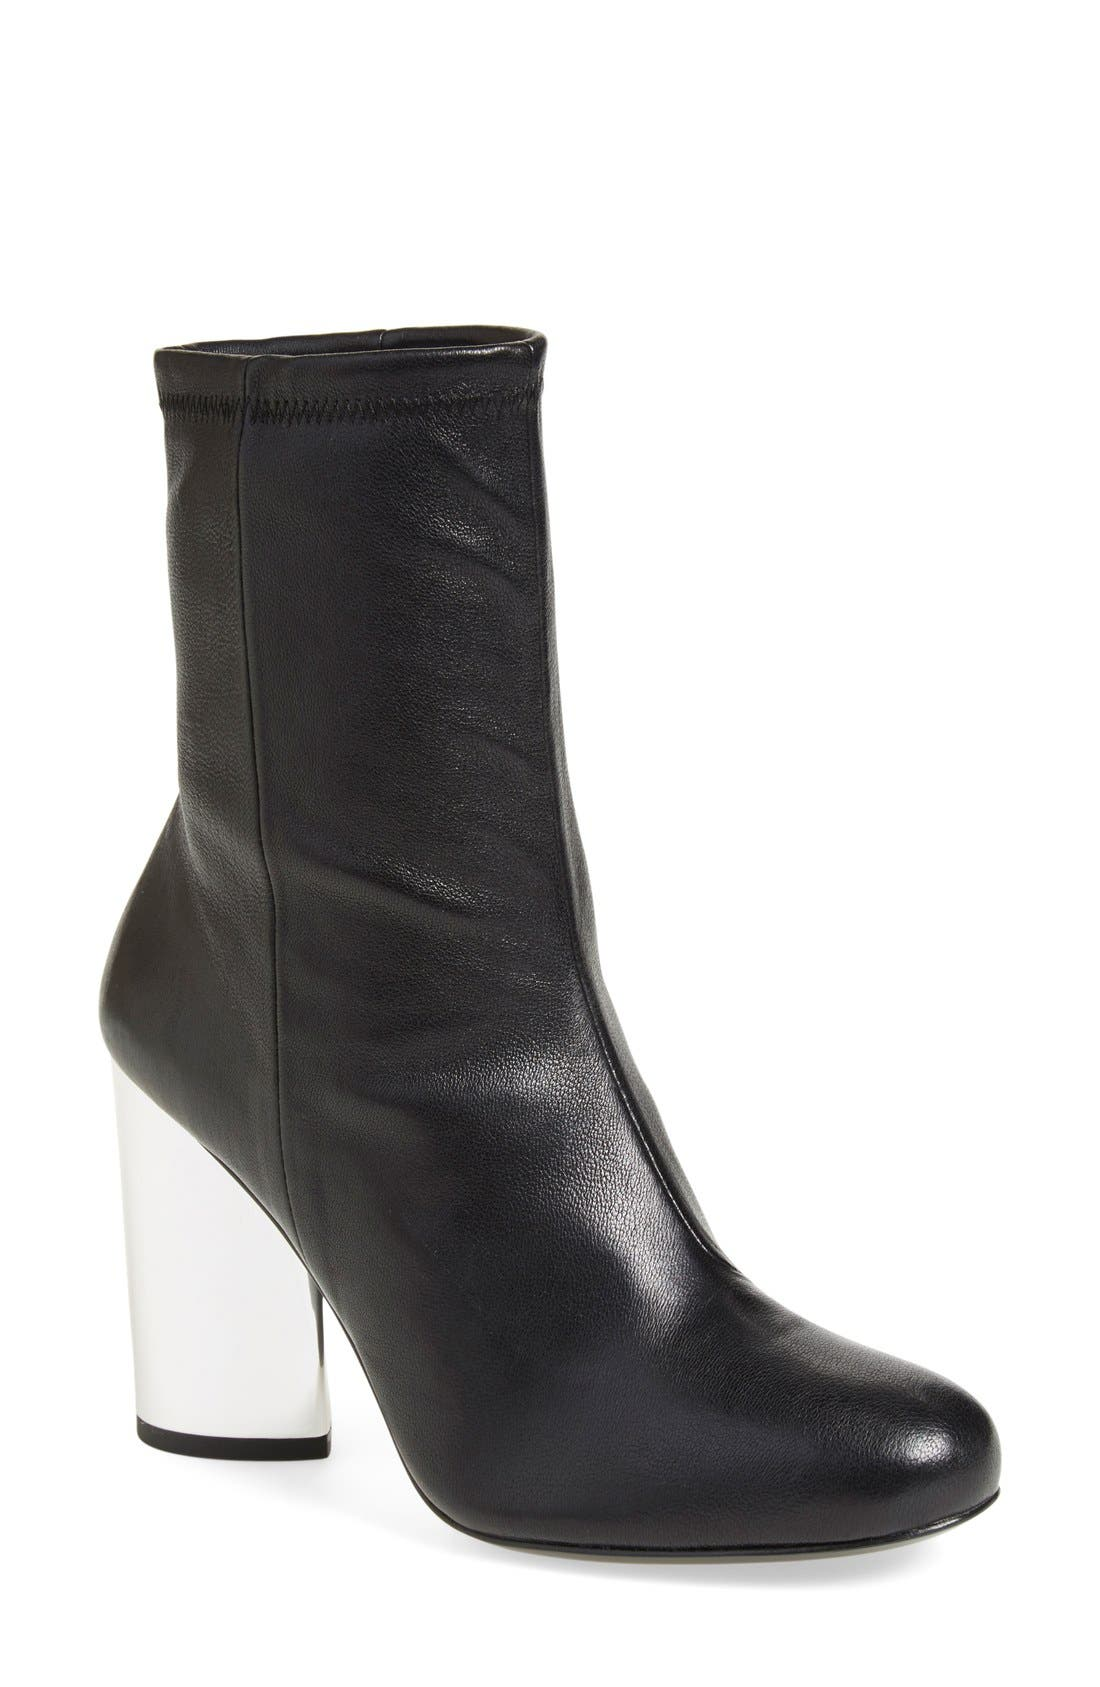 Alternate Image 1 Selected - Opening Ceremony 'Zloty' Round Toe Bootie (Women)